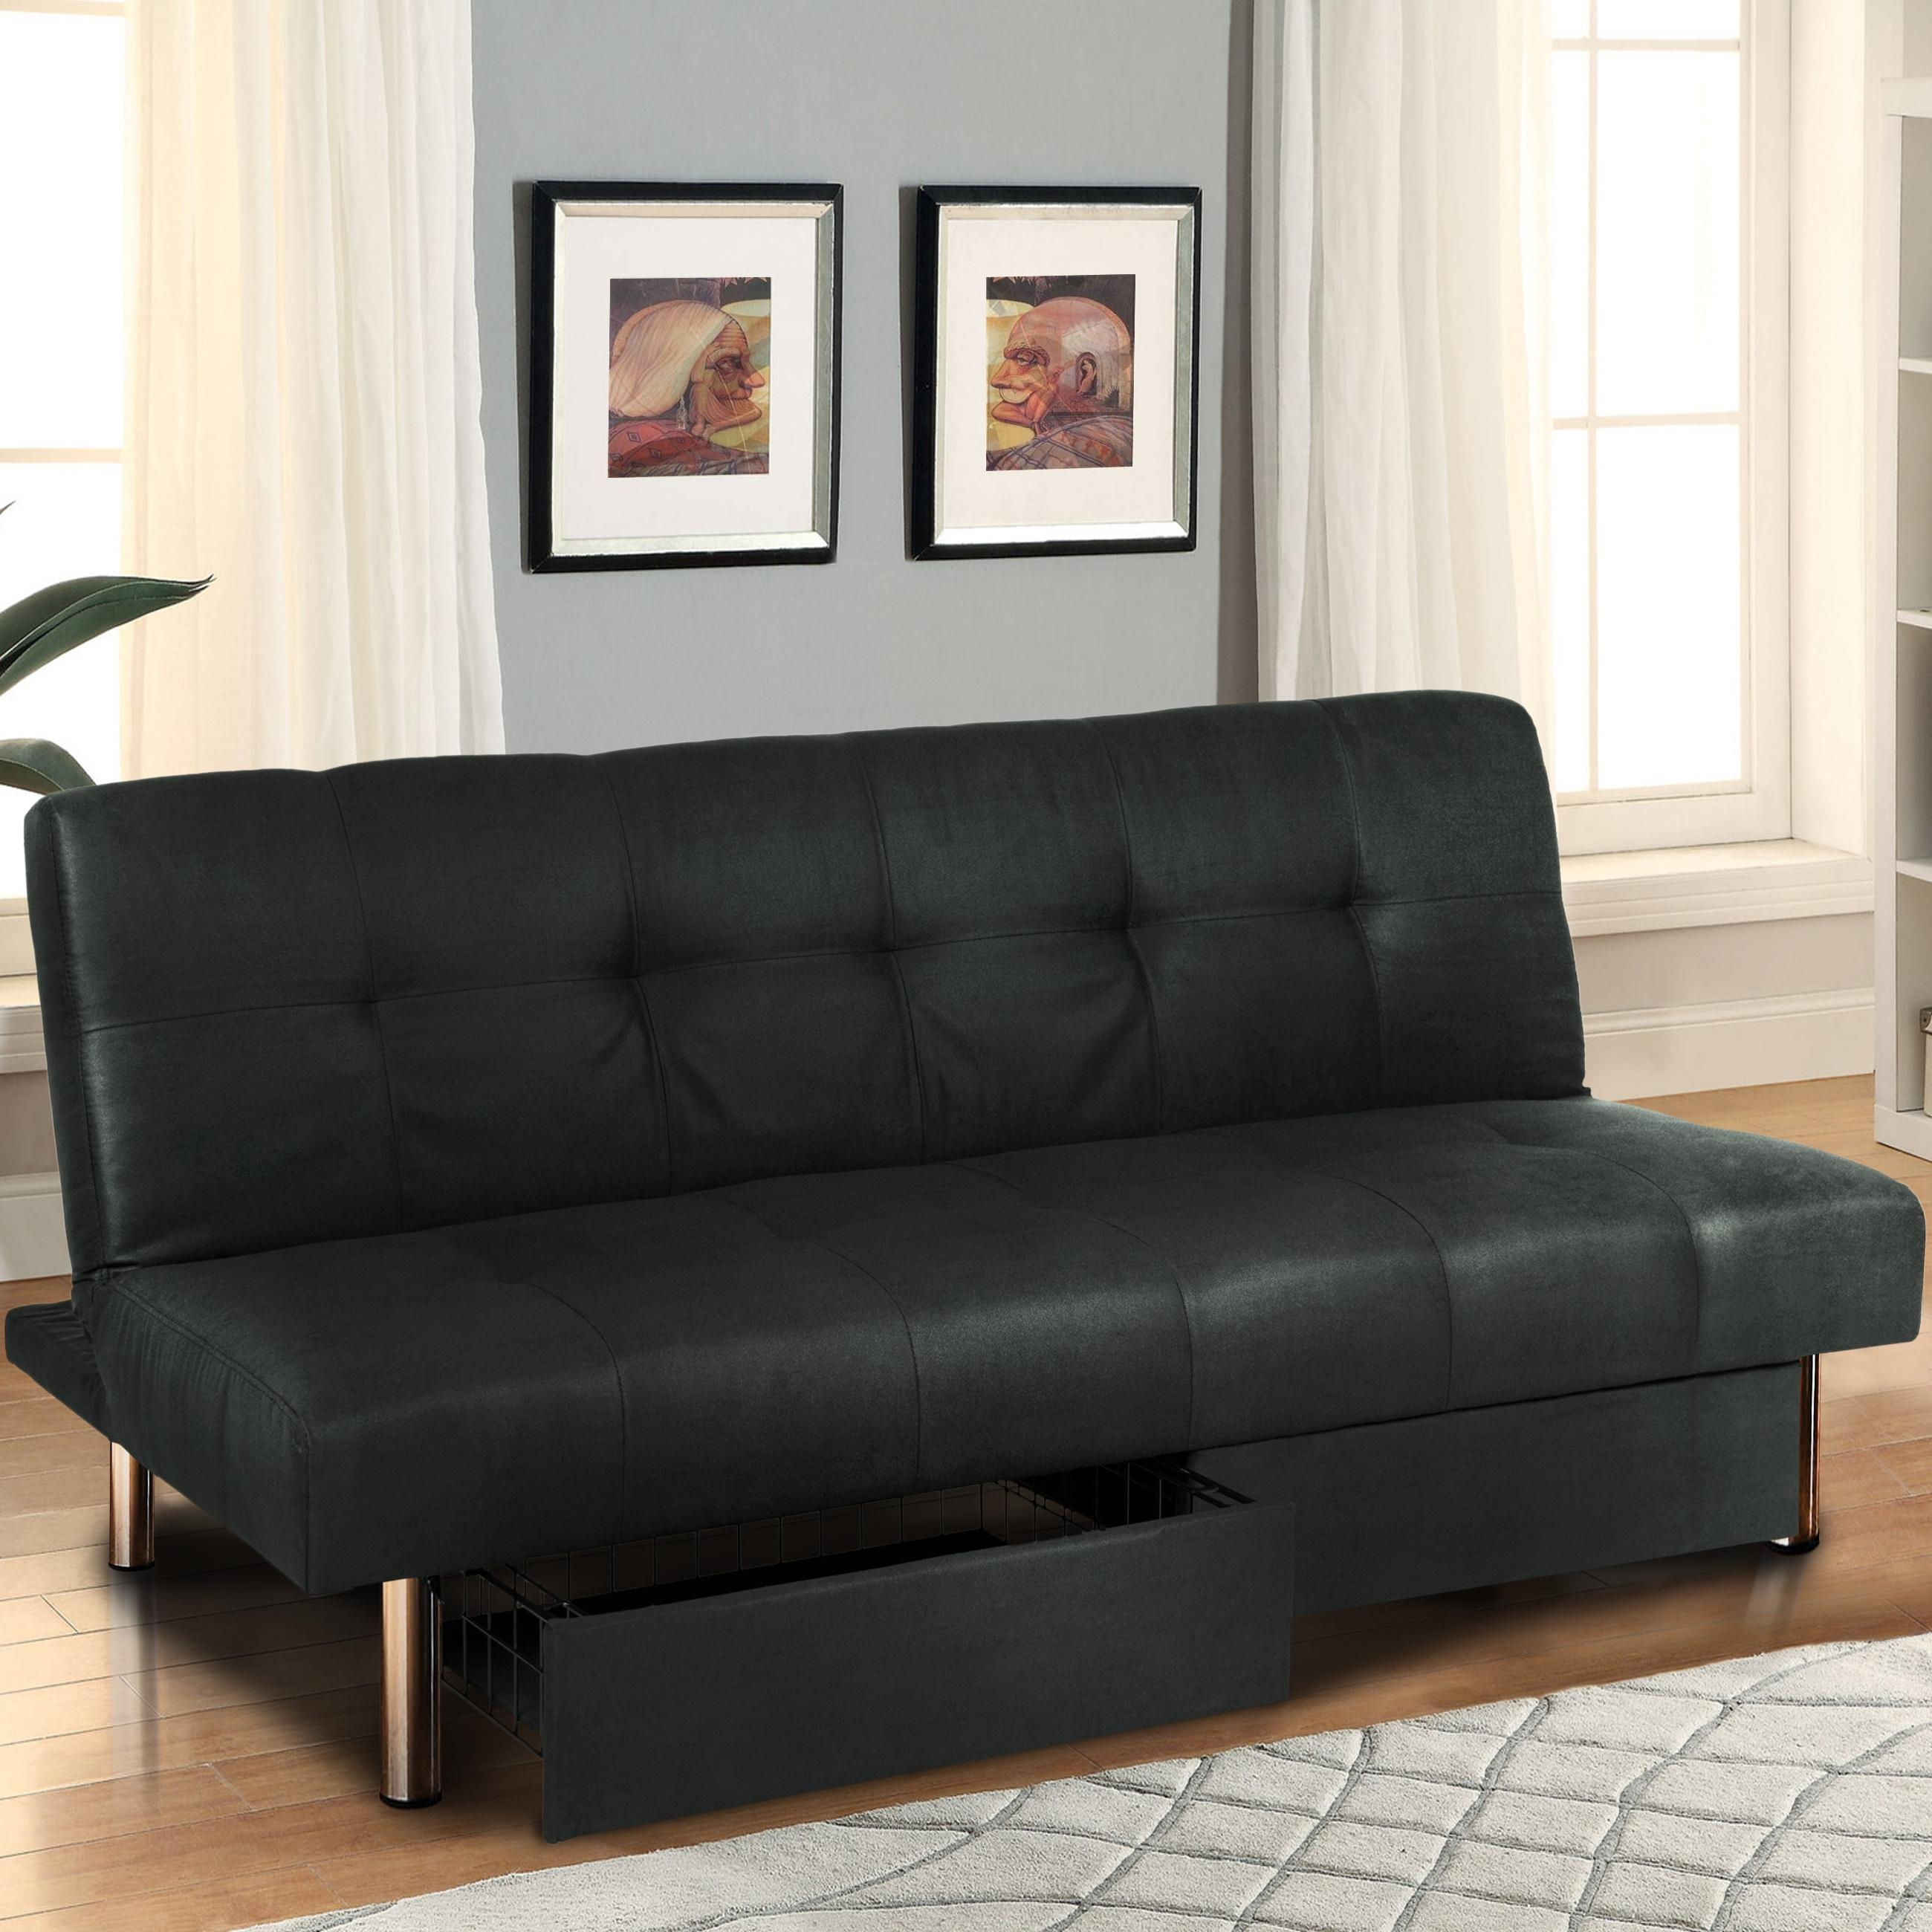 Microfiber Futon Folding Sofa Bed Couch Mattress & Storage Throughout Sofa Lounger Beds (Image 14 of 20)